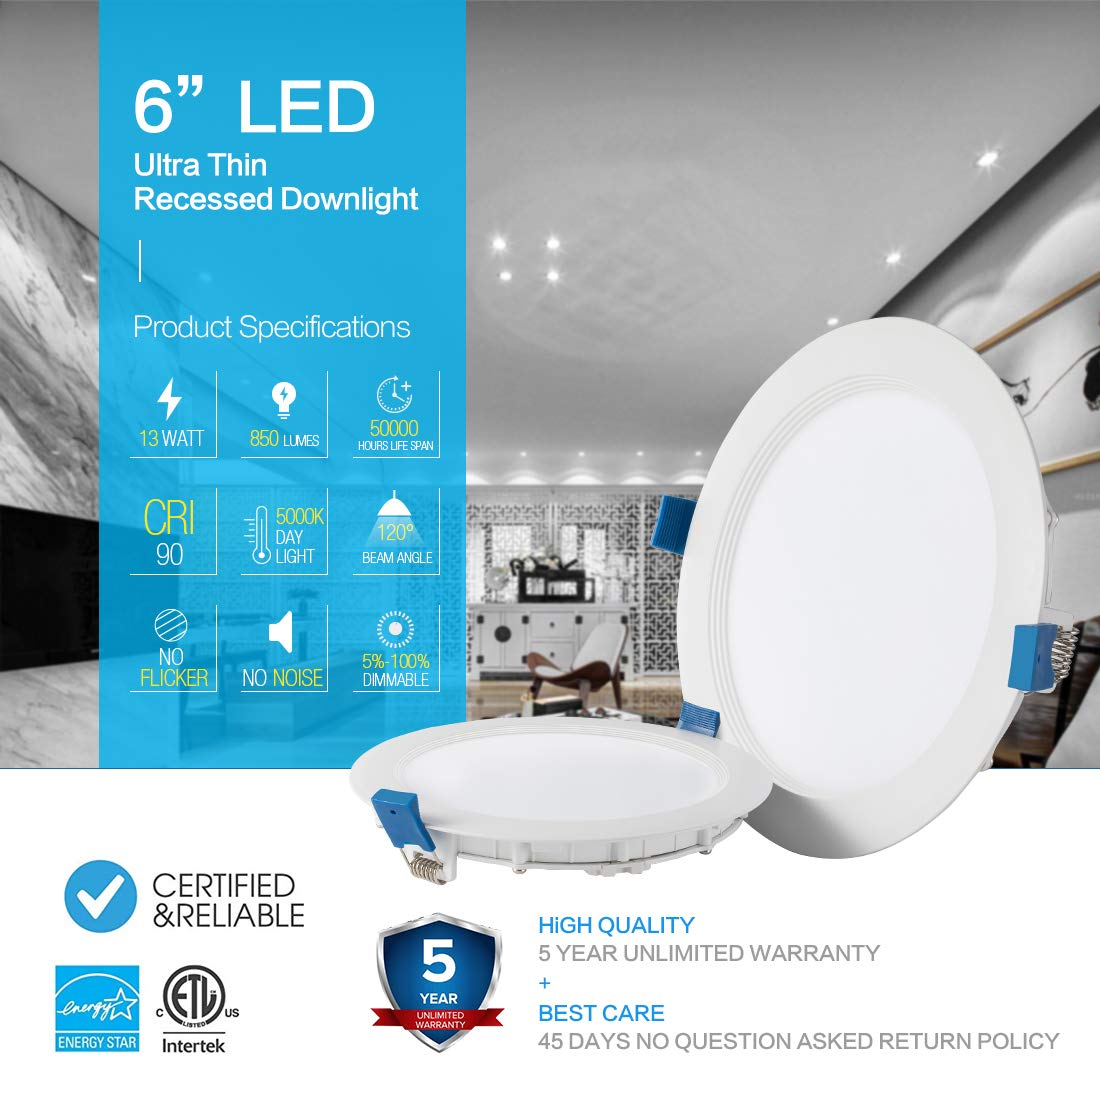 SAATLY 13W 6 inch LED Recessed Lighting ETL /& Energy Star Certified 5000K Daylight Dimmable Ultra Thin Ceiling Downlight with Junction Box Pack of 4 850lm 110W Eqv